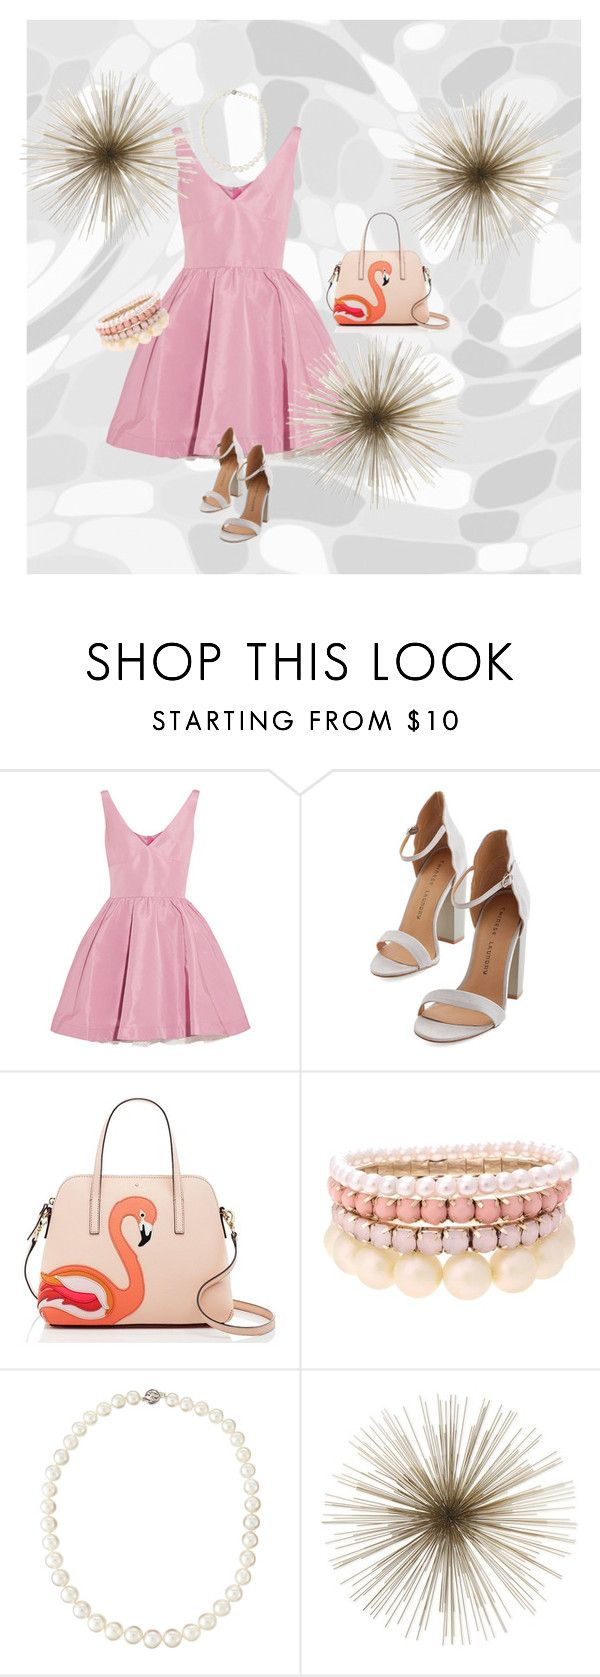 """""""Summer dresses combos #1"""" by jajalamajala ❤ liked on Polyvore featuring moda, RED Valentino, Kate Spade, Lipsy y Belpearl"""